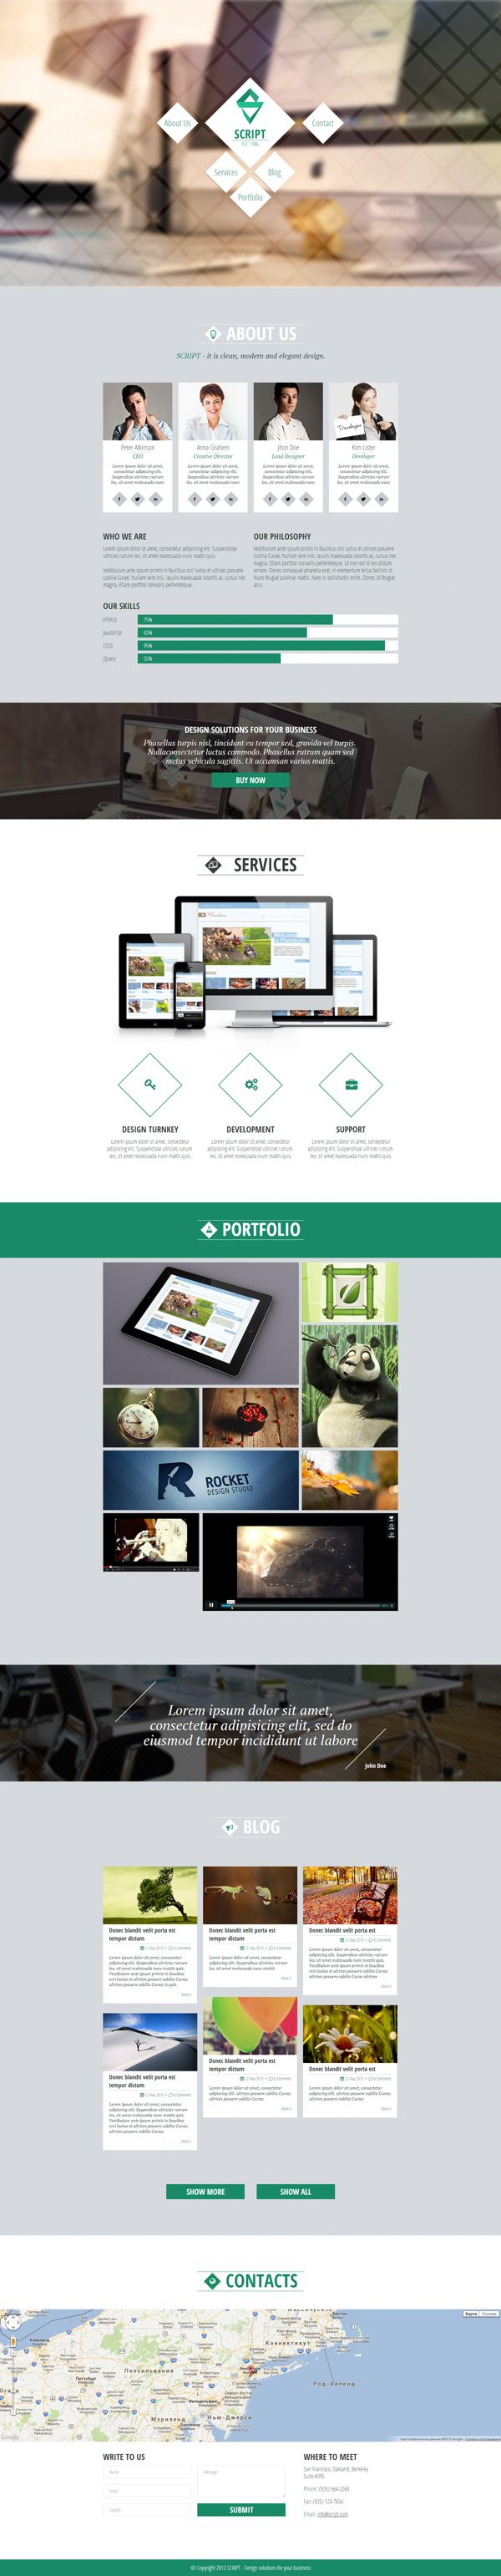 Script - HTML5 One Page Template by Zizaza - design ocean , via Behance